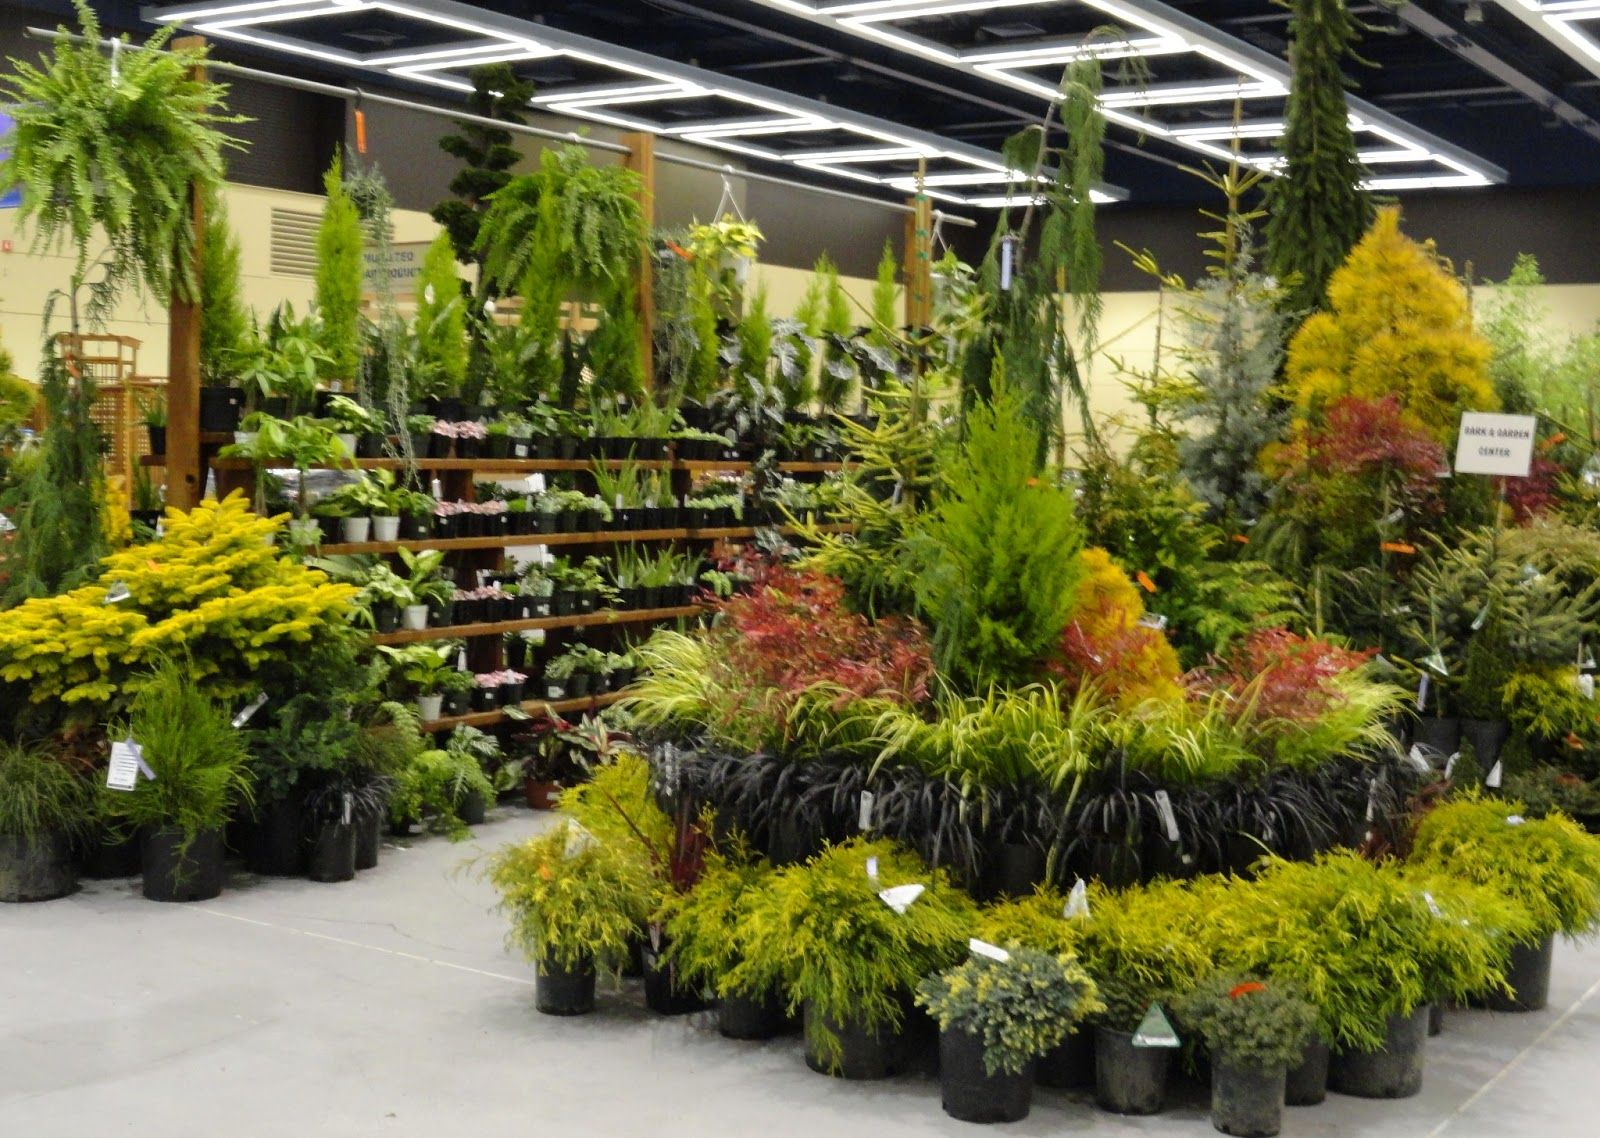 I almost bought some plants! Garden center